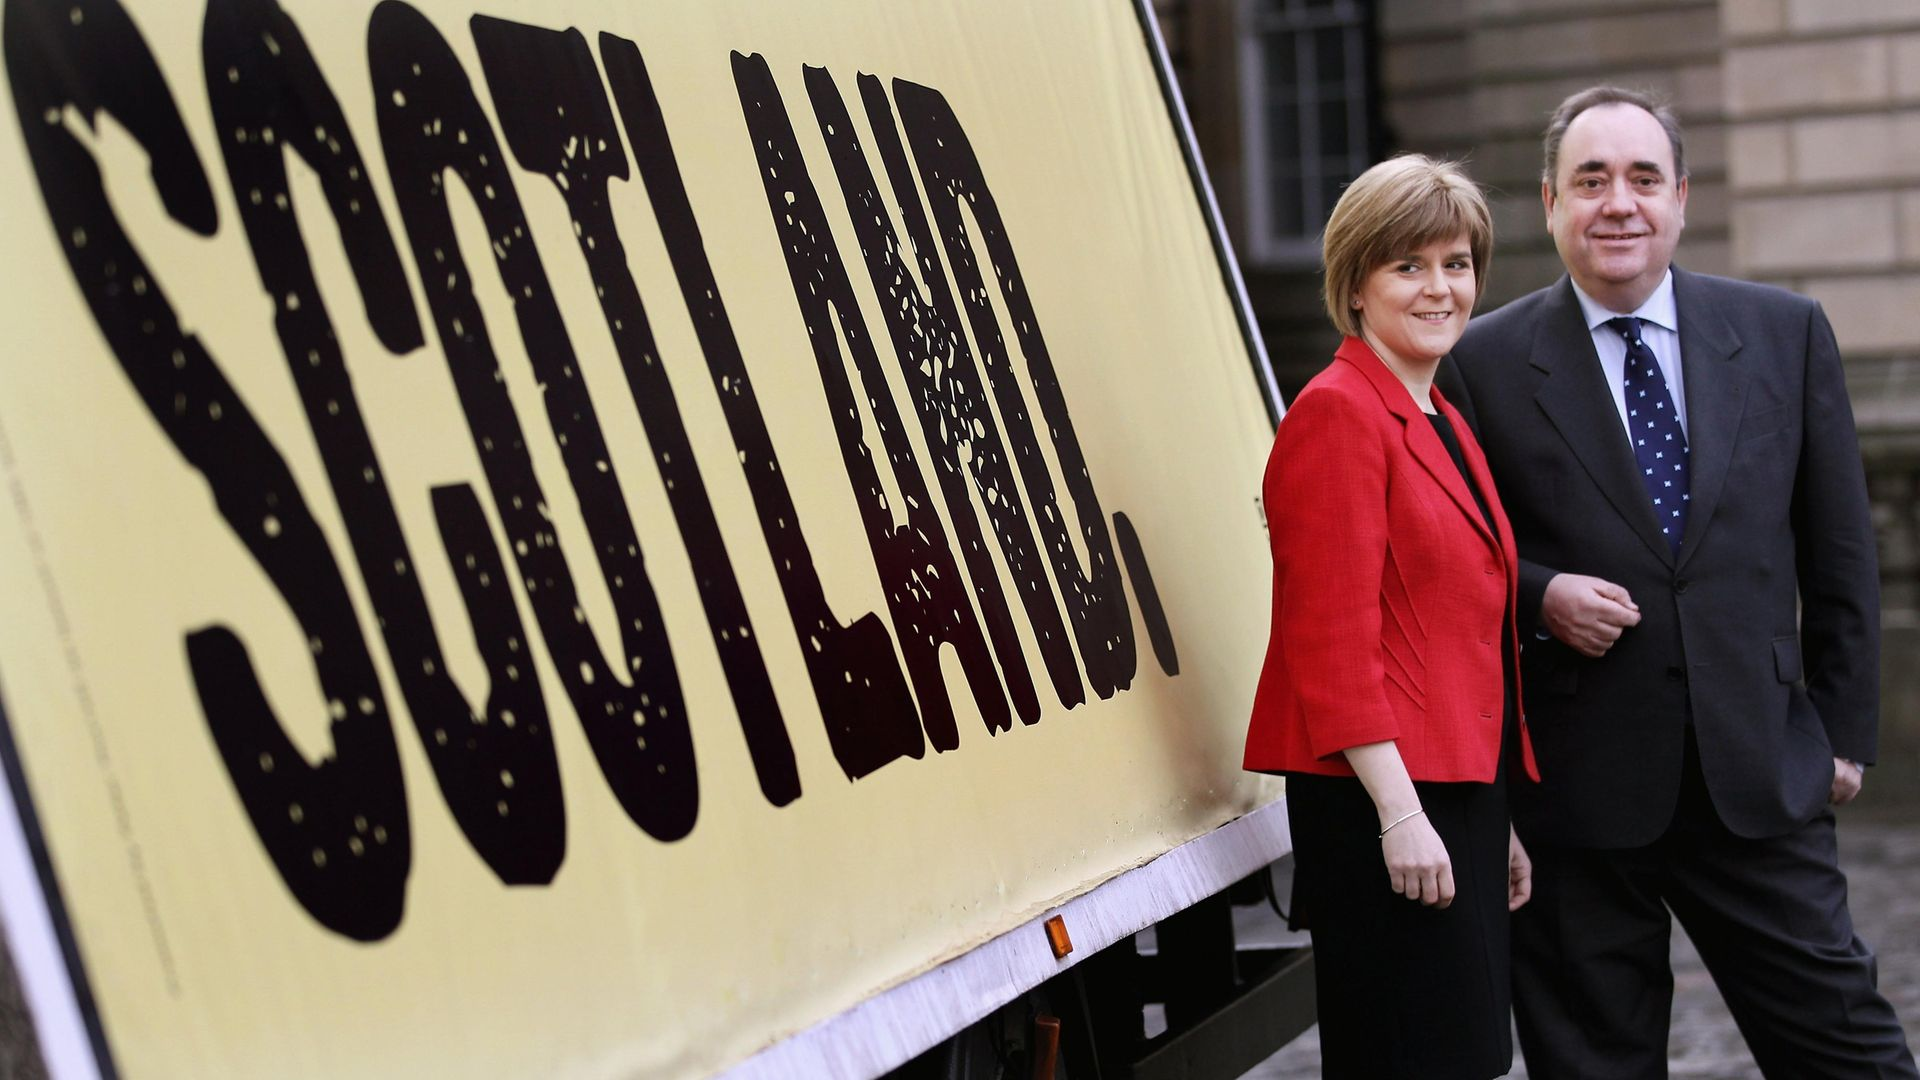 SPLIT: Former Scotland first minister Alex Salmond and then-deputy and successor as first minister Nicola Sturgeon pose together during a SNP campaign poster launch in 2011 (Photo: Getty Images) - Credit: Getty Images